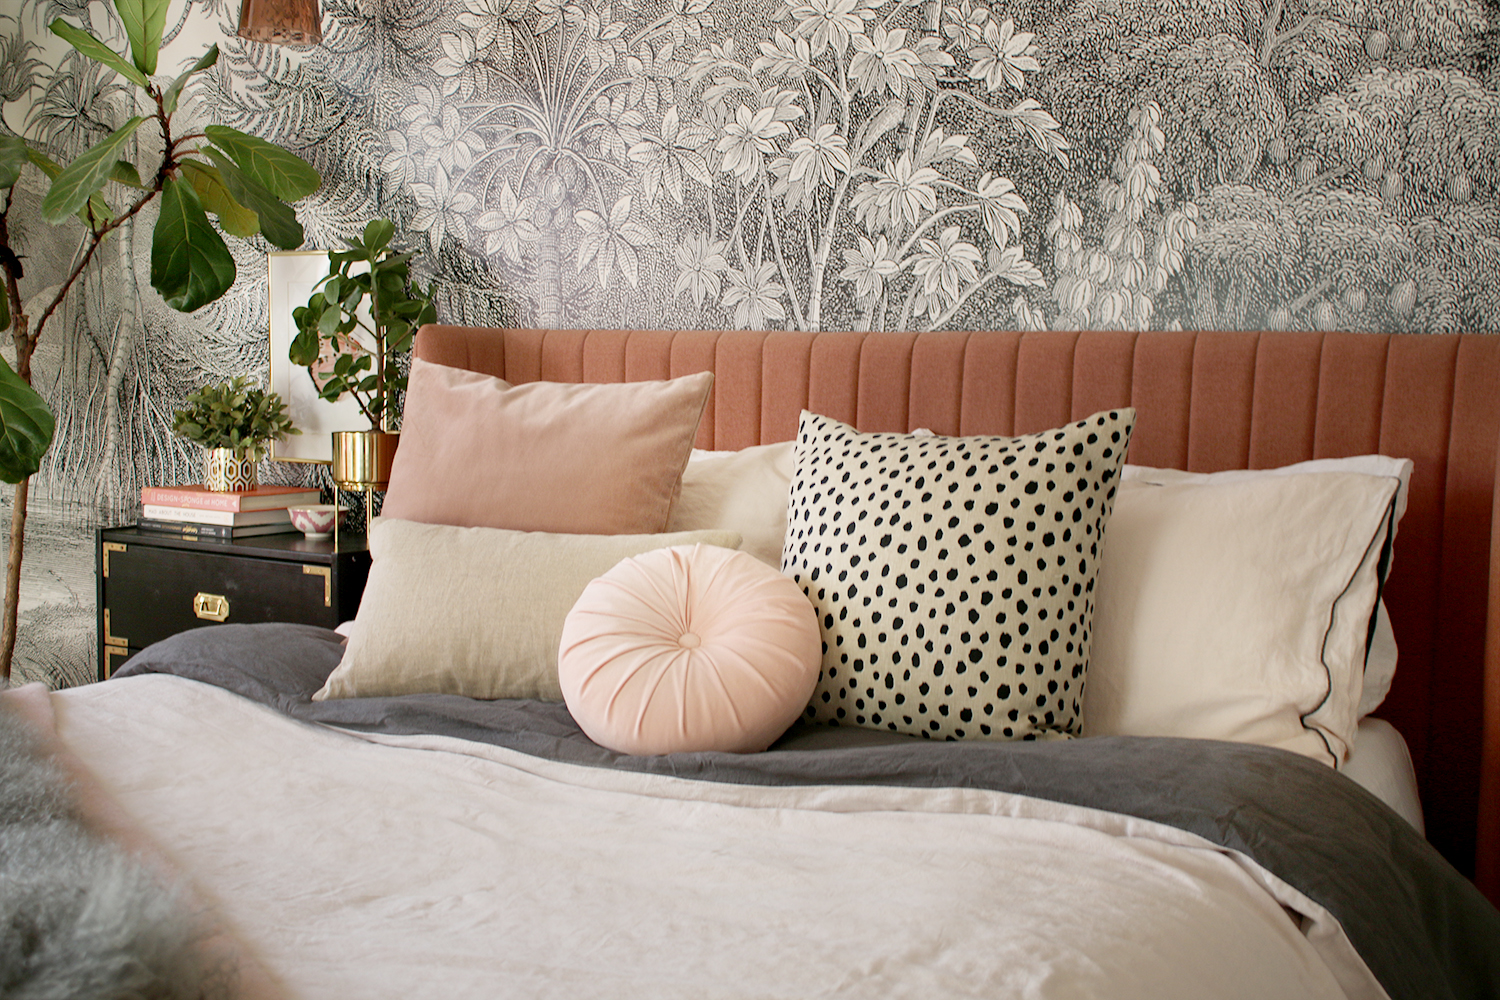 10 Tips for Choosing Decorative Pillows